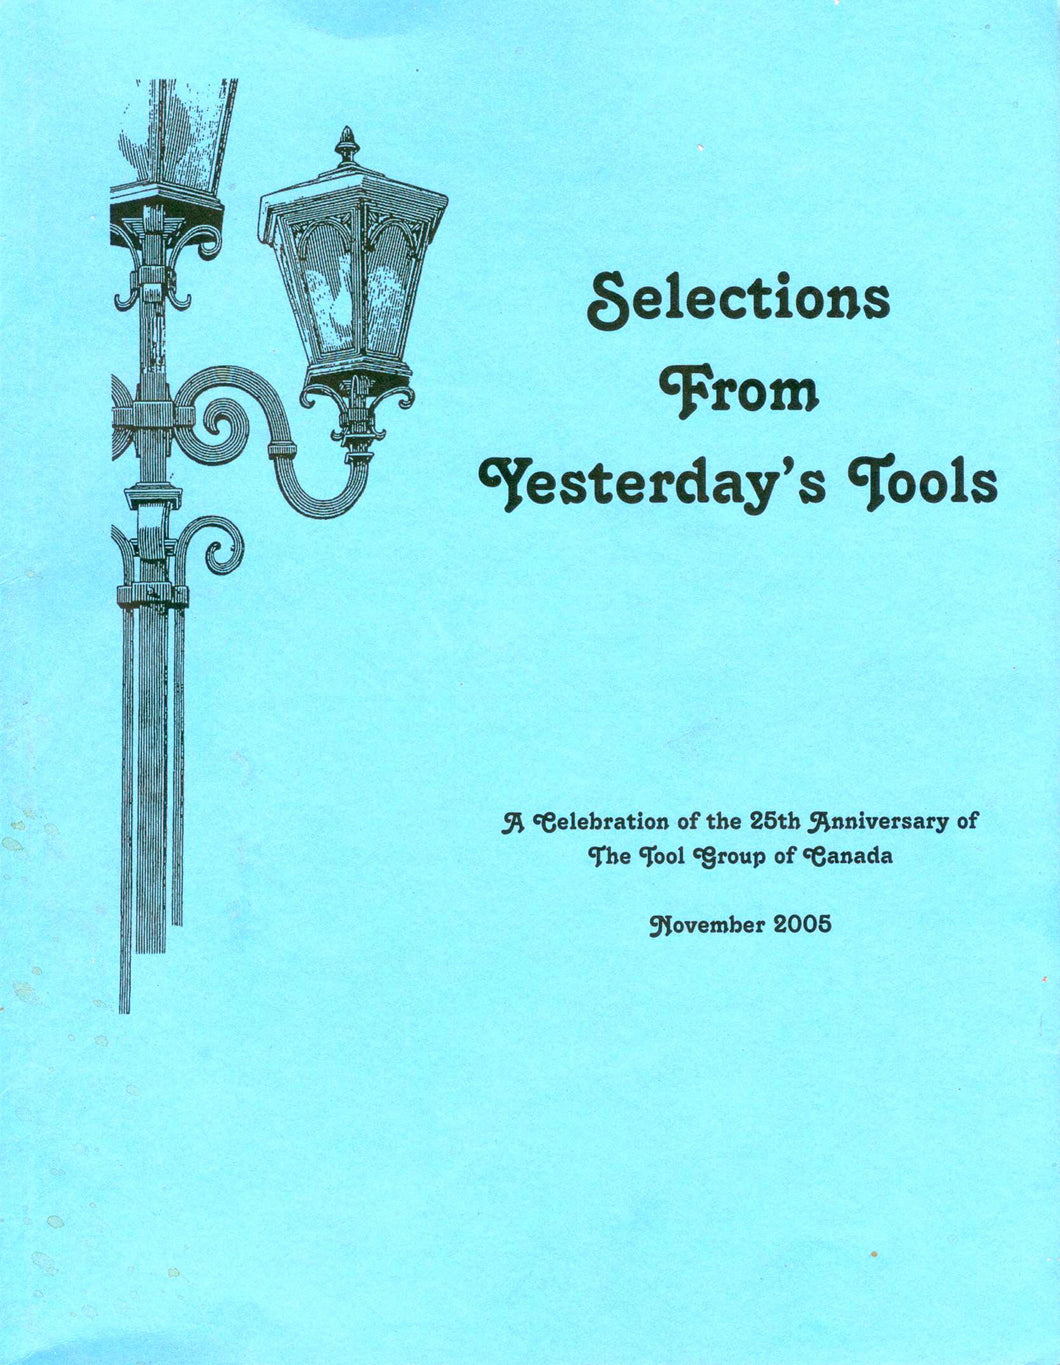 Selections From Yesterday's Tools: A Celebration of the 25th Anniversary of The Tool Group of Canada